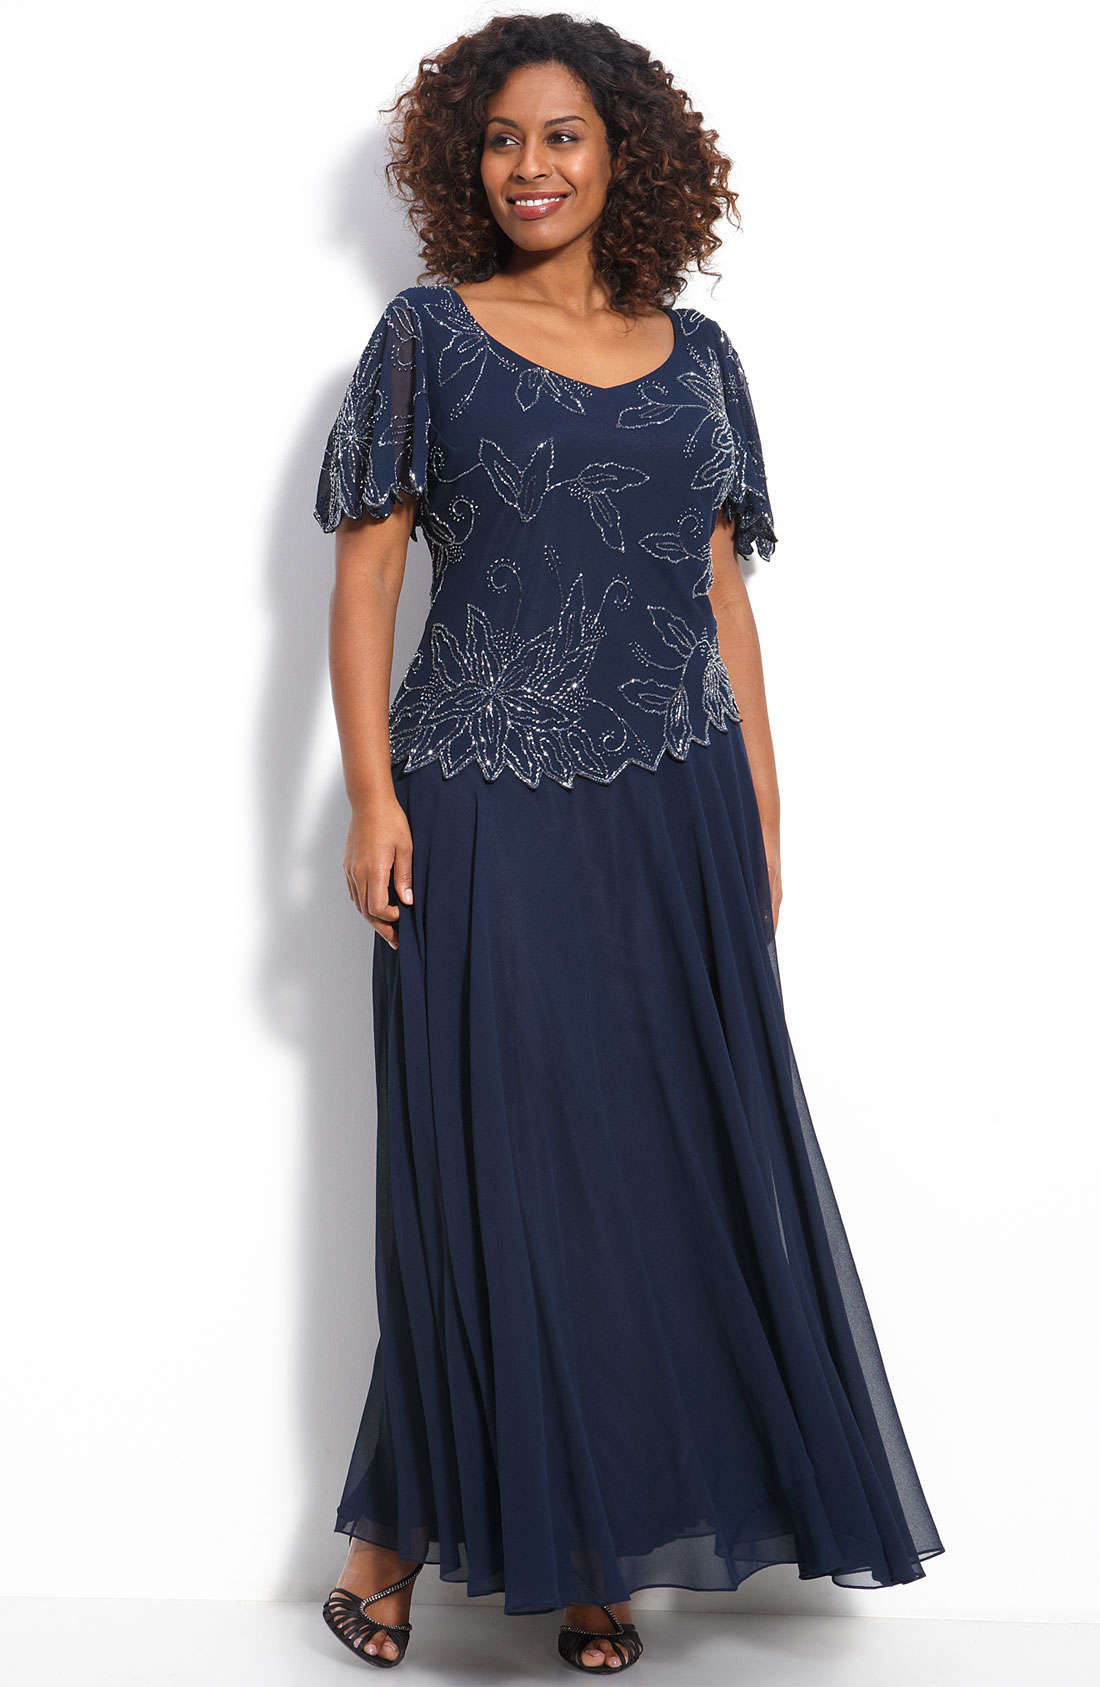 218 Sz 18w J Kara Floral Beaded Gown Navy Mother Of The